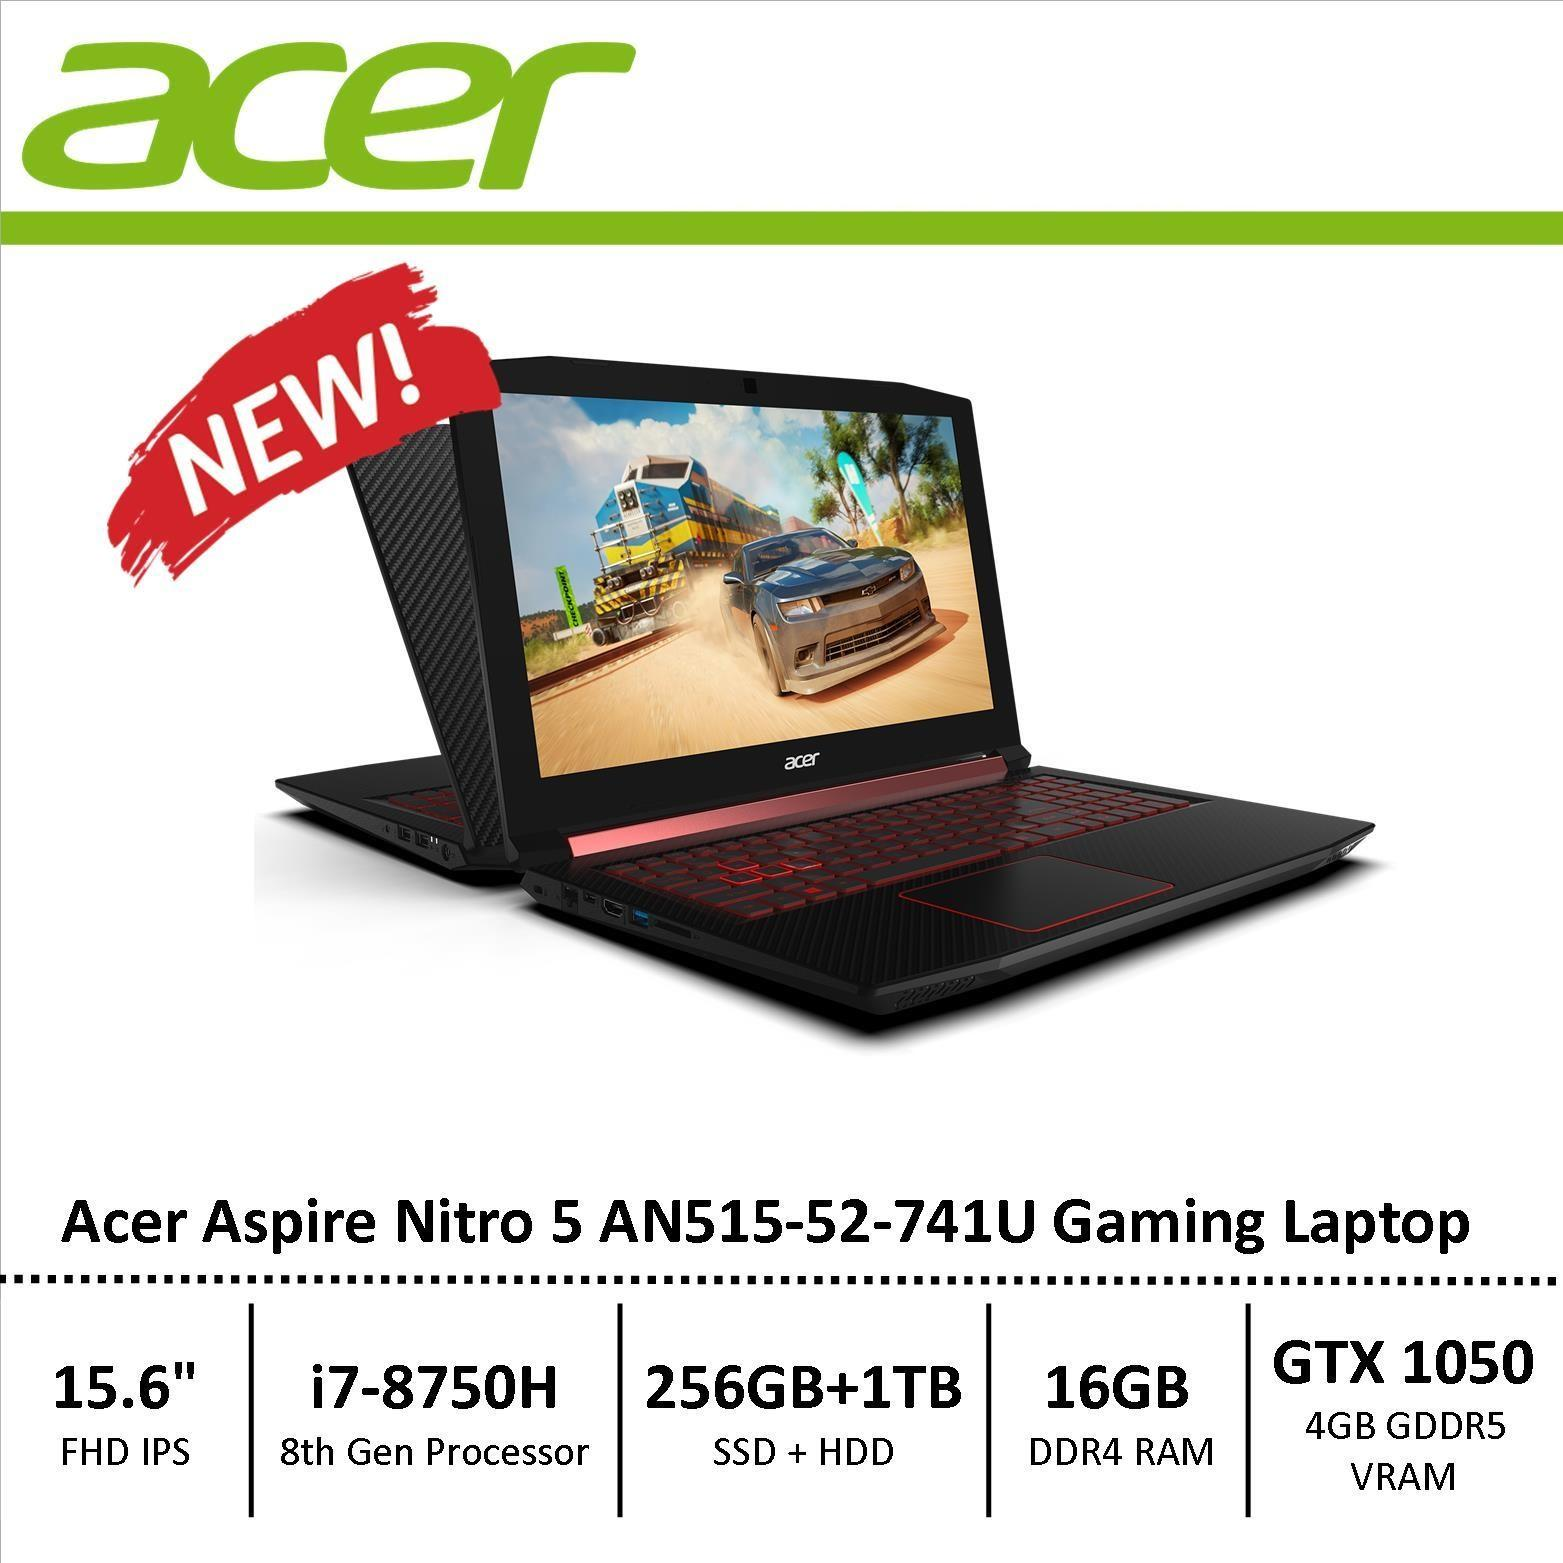 Acer AN515-52-741U Aspire Nitro 5 Gaming Laptop 8th Generation i7 Processor with GTX 1050 Graphics